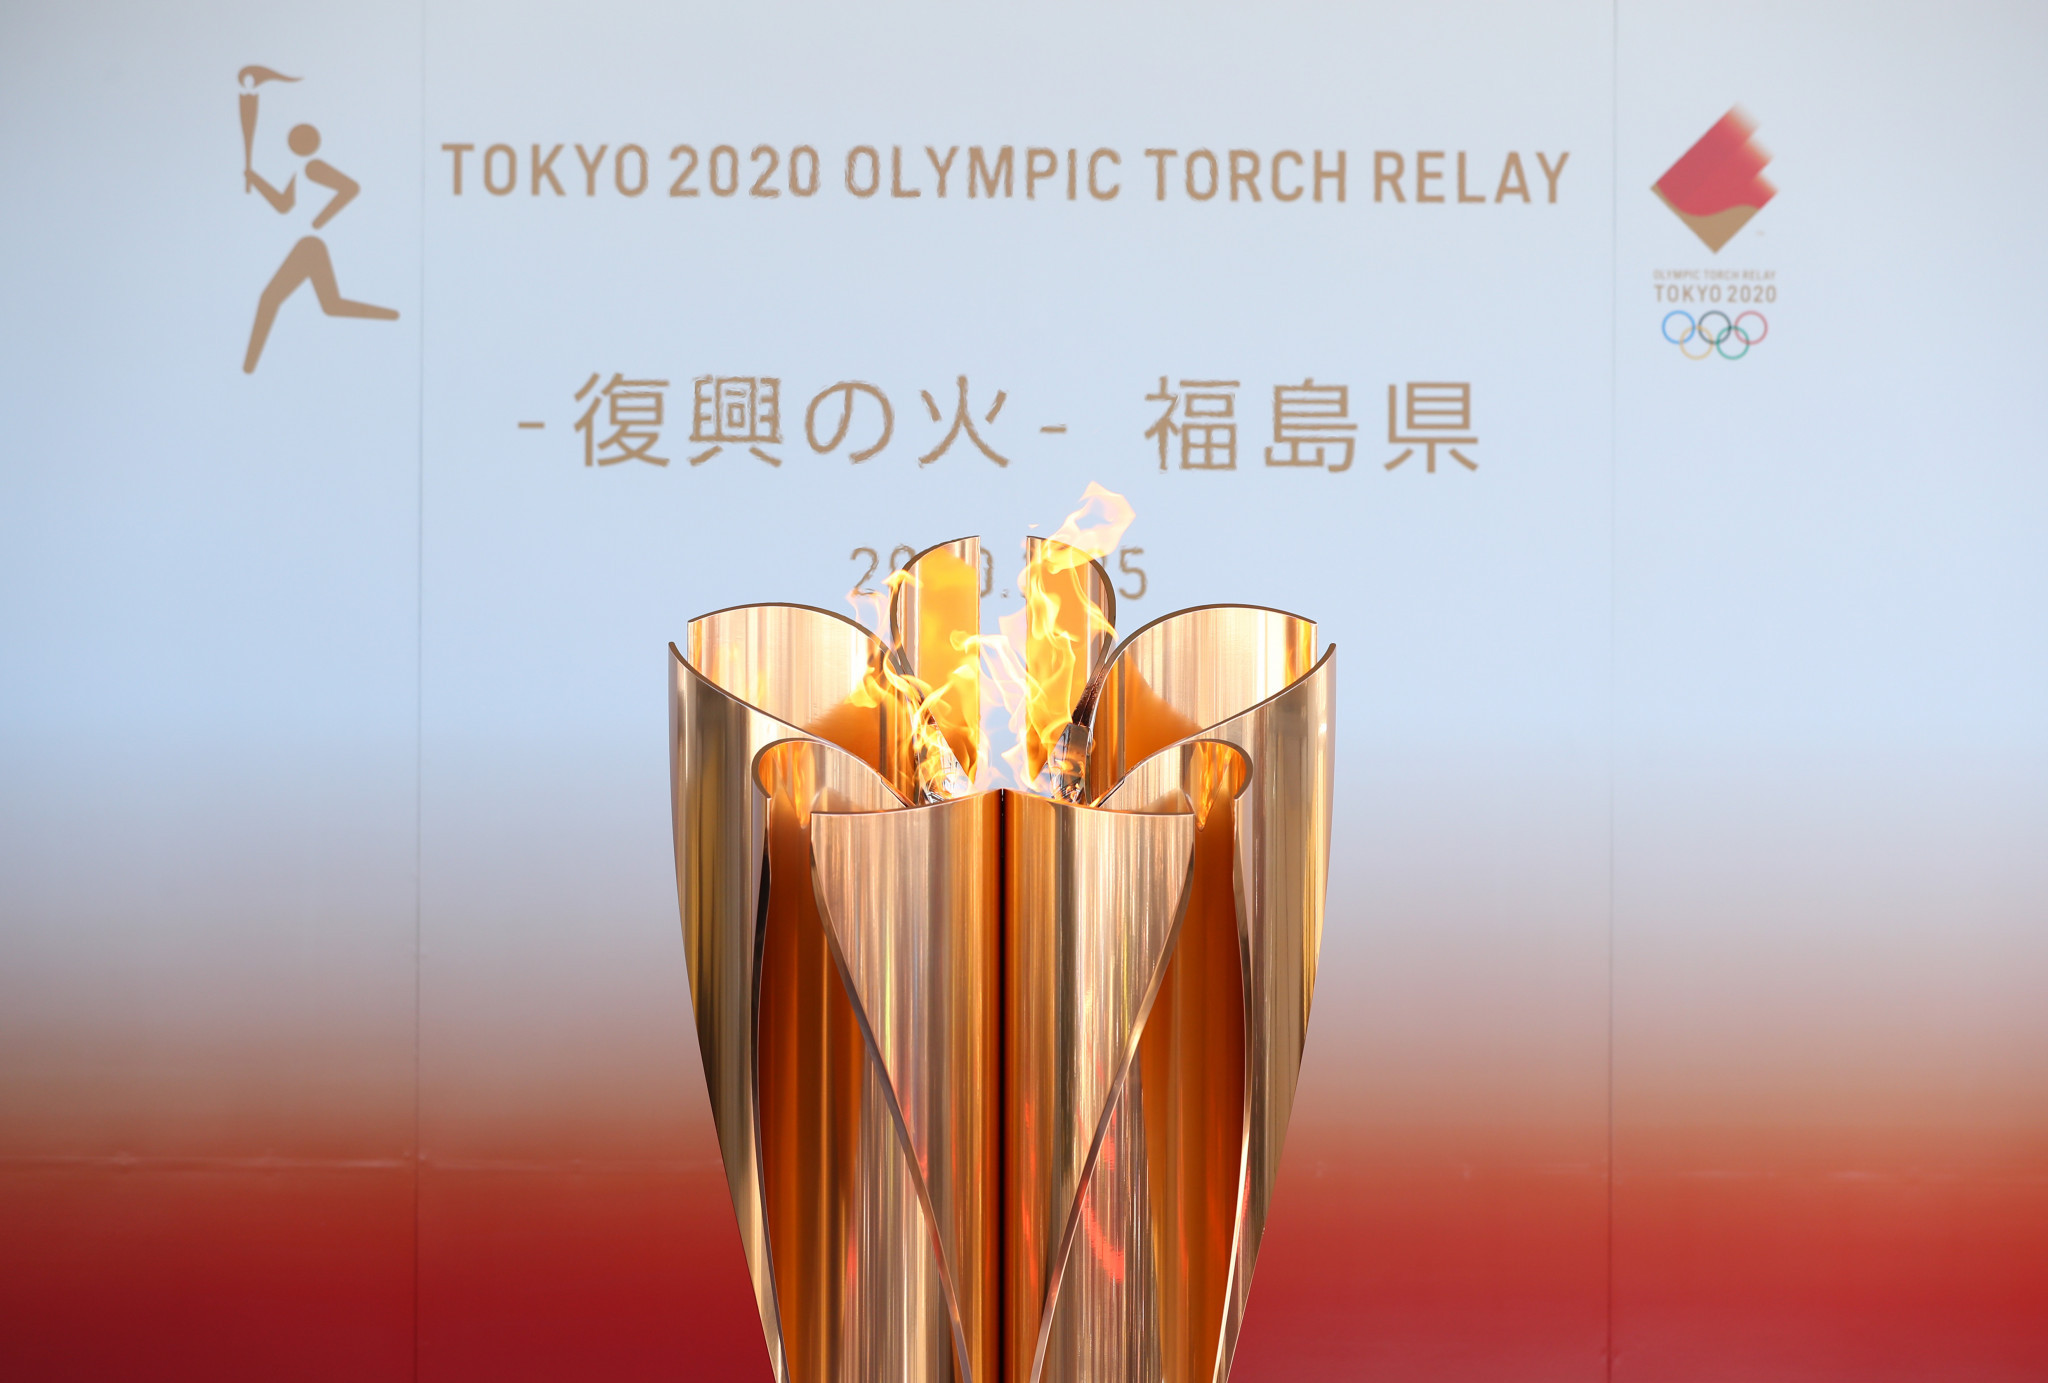 The Olympic Torch Relay could be one way organisers foster a sense of inclusion in the Olympics among the Japanese public ©Getty Images